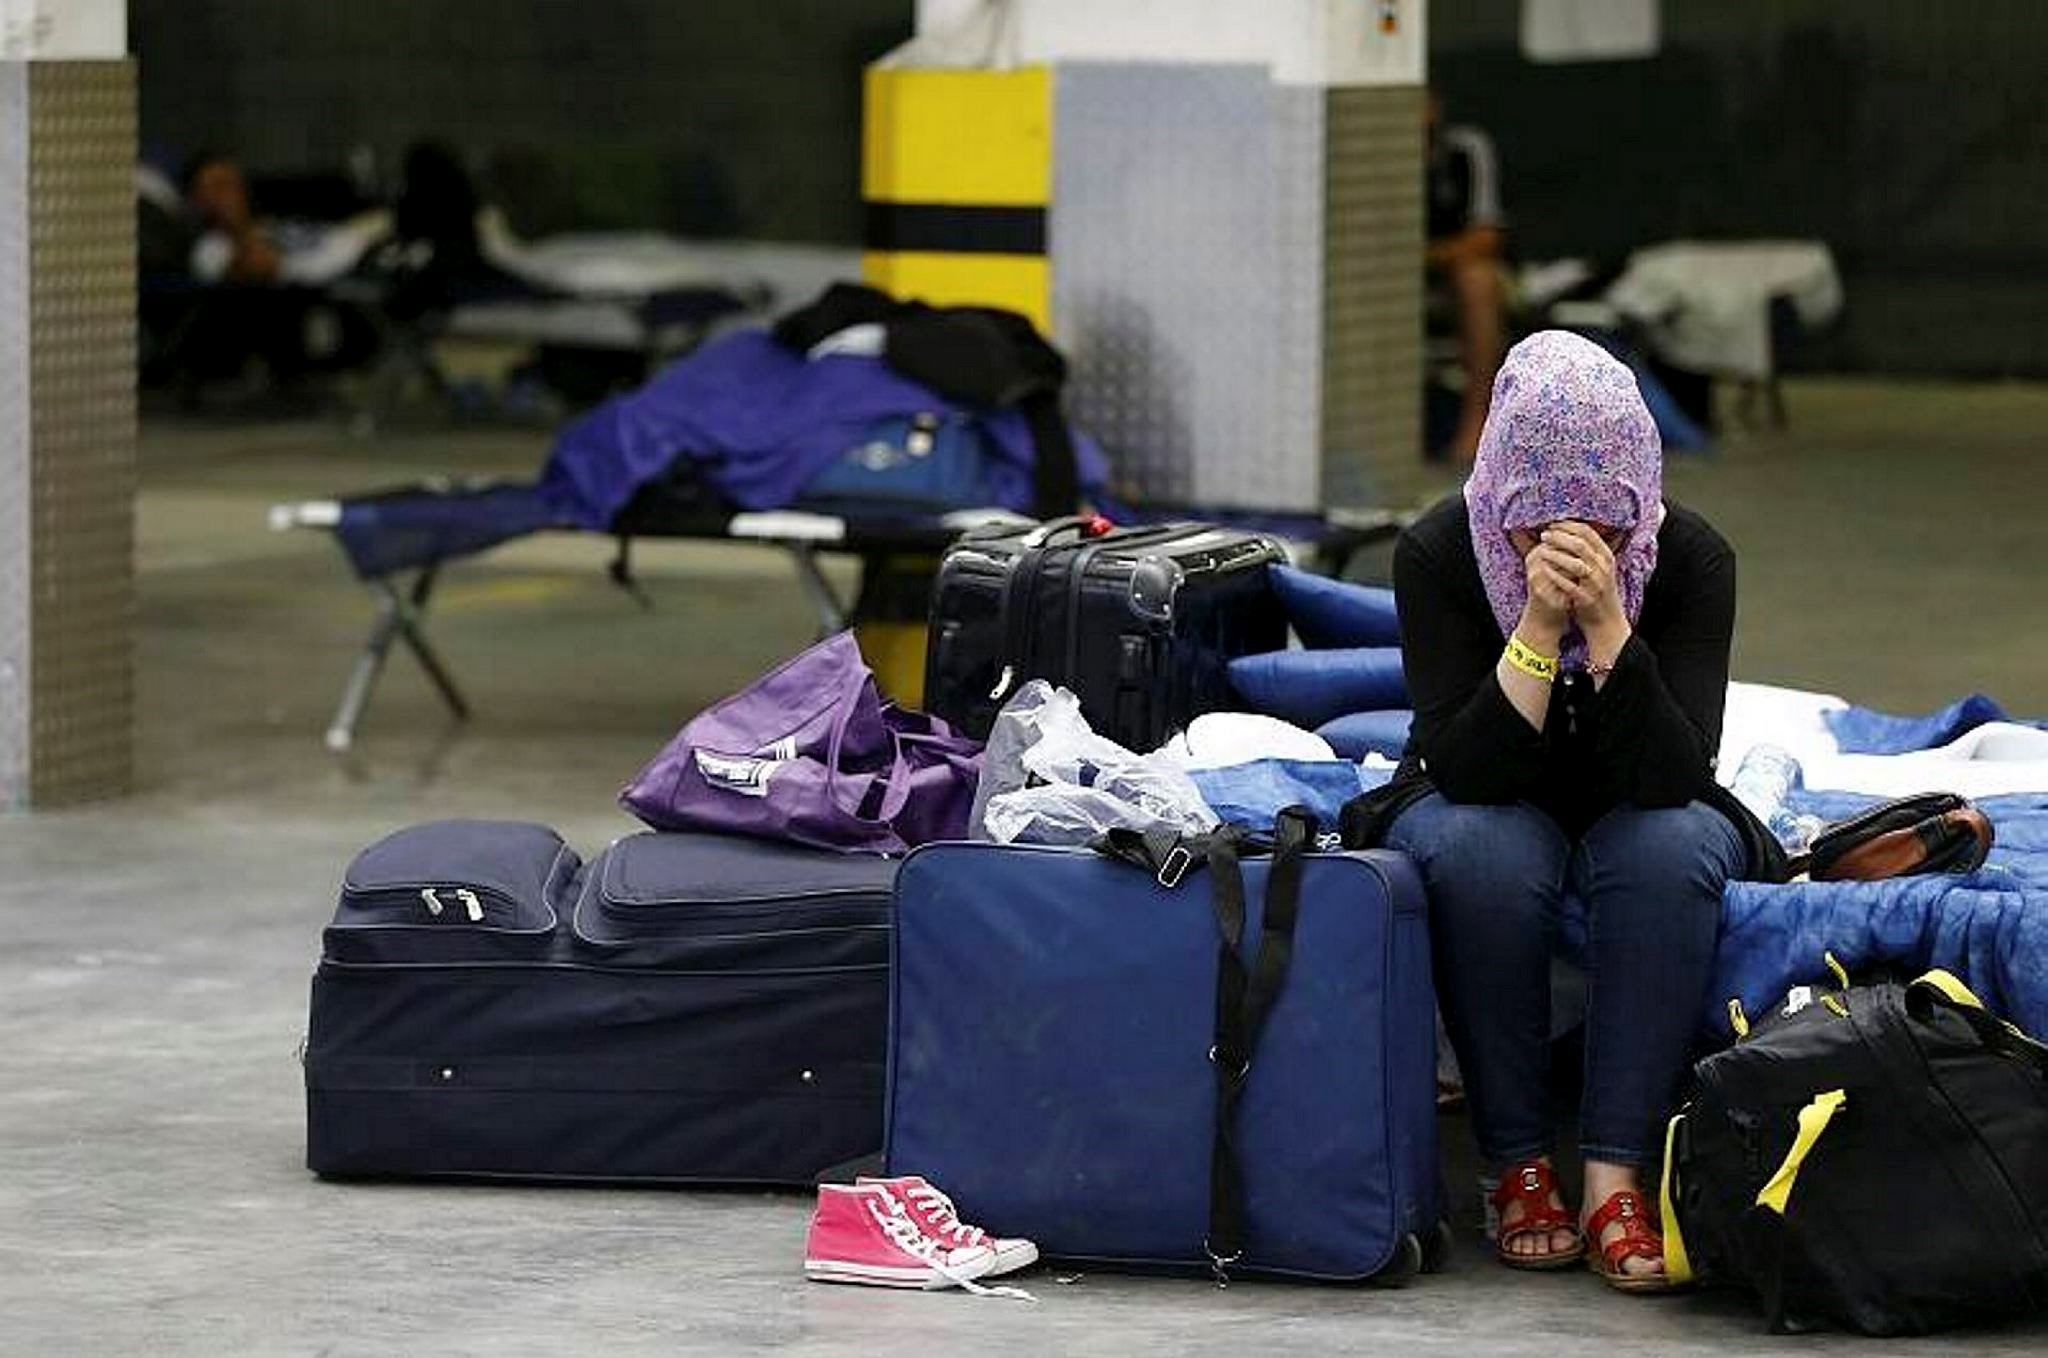 A Syrian woman cries as she sits on a folding bed in a former newspaper printing house used as a refugee registration centre for the German state of Hesse in Neu-Isenburg, September 11, 2015. (FILE Photo)